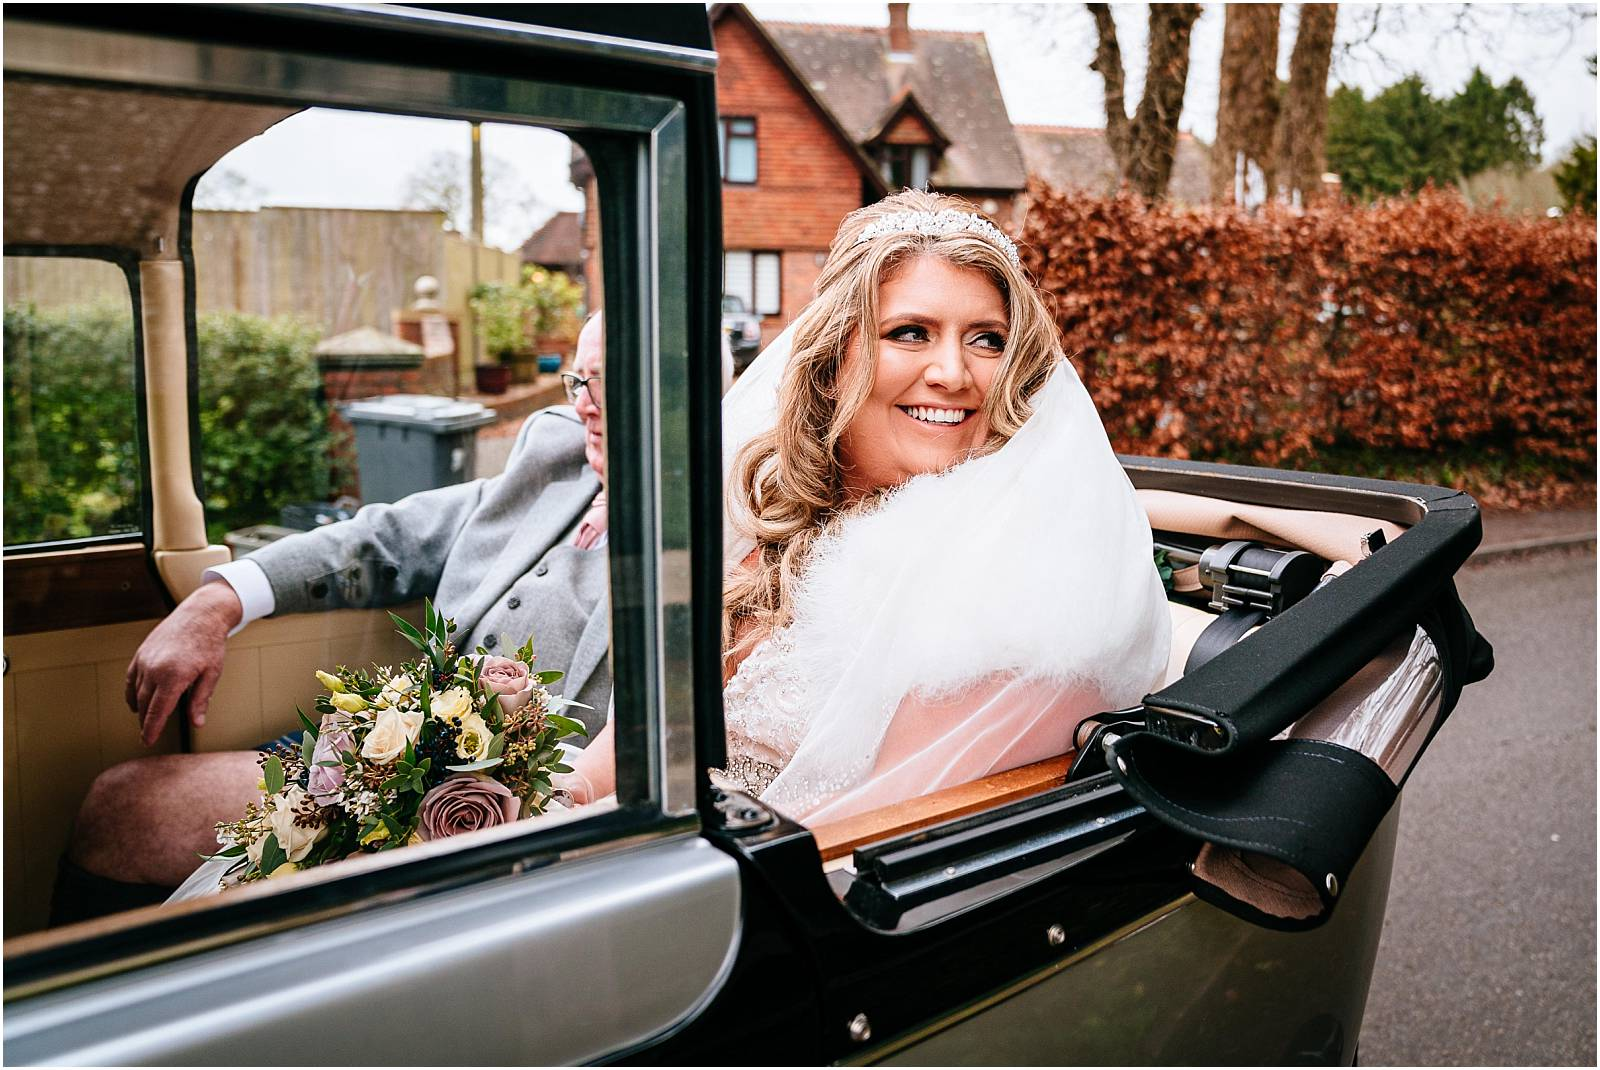 bride arrives at medstead church wedding in vintage car